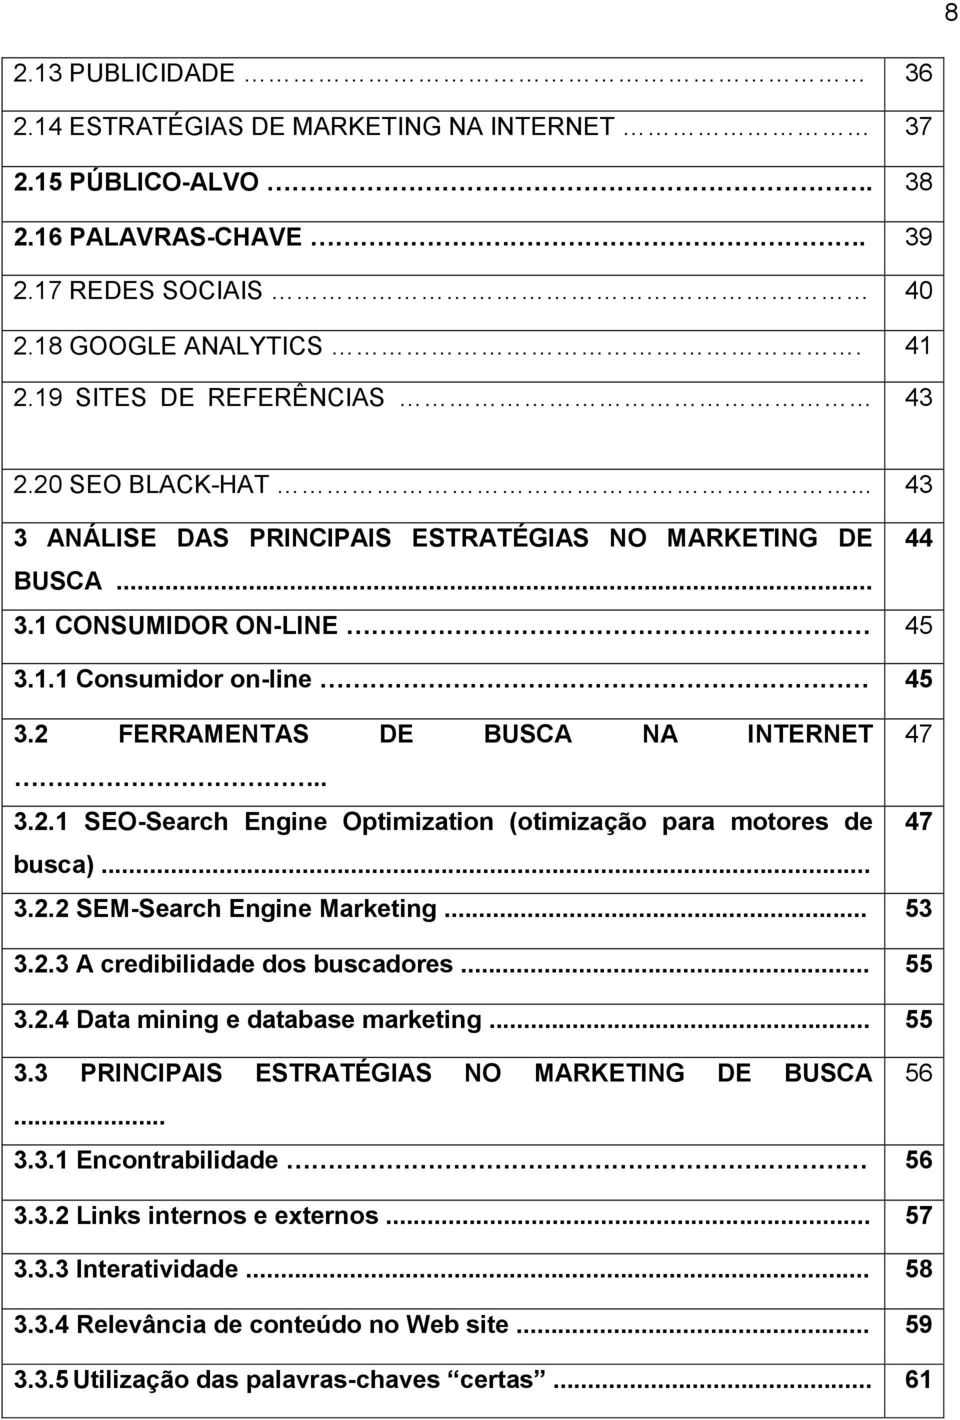 .. 3.2.2 SEM-Search Engine Marketing... 53 3.2.3 A credibilidade dos buscadores... 55 3.2.4 Data mining e database marketing... 55 3.3 PRINCIPAIS ESTRATÉGIAS NO MARKETING DE BUSCA 56... 3.3.1 Encontrabilidade.